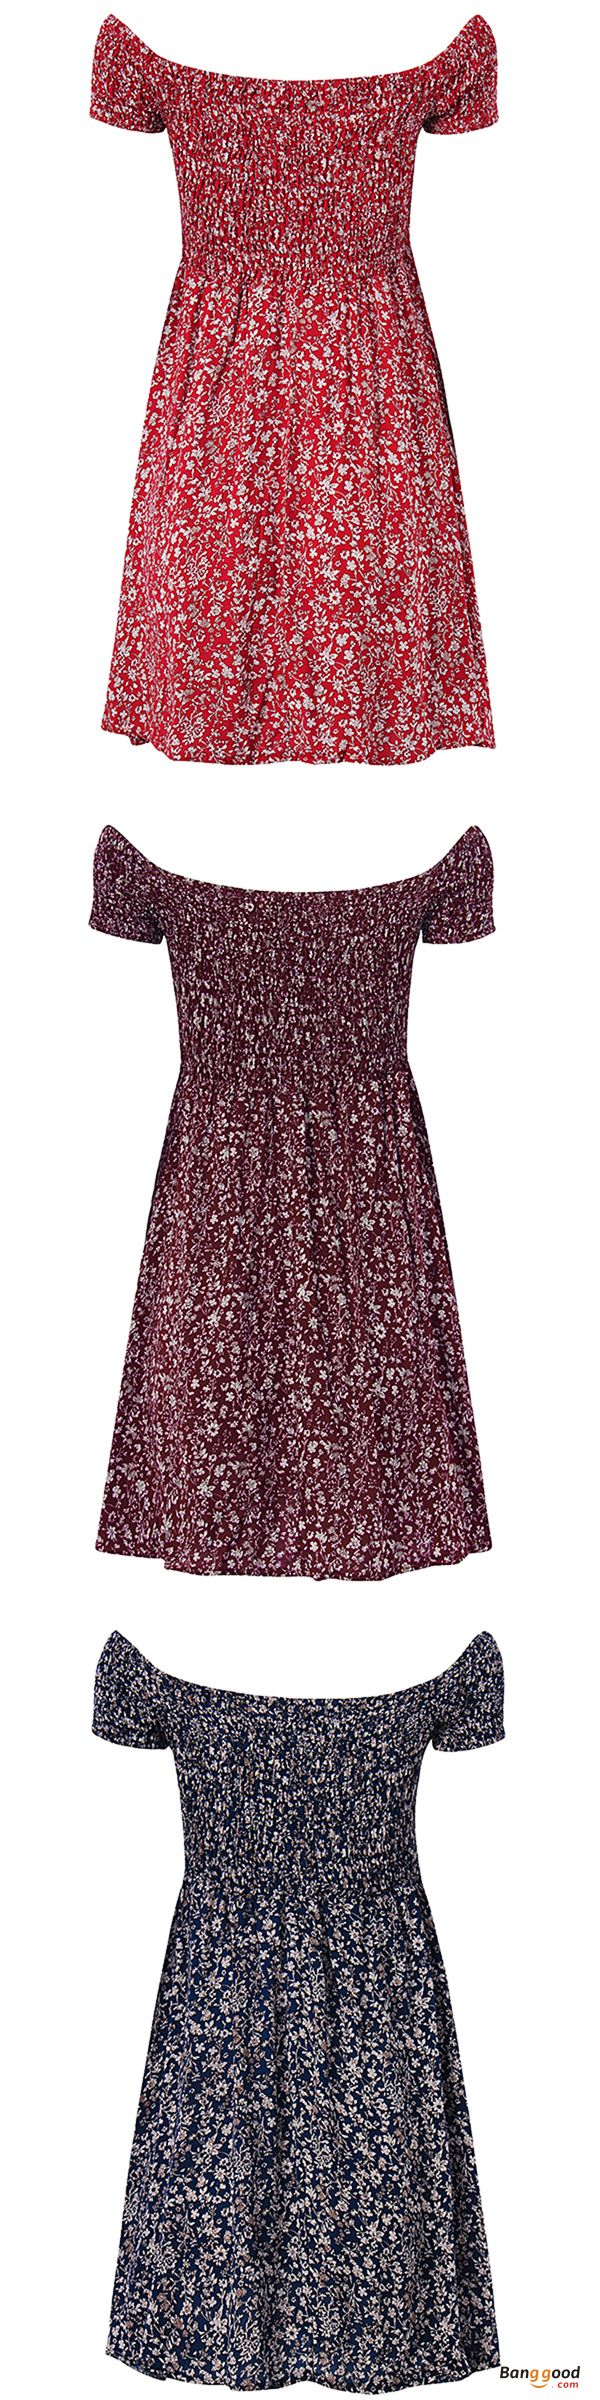 US$21.69+Free shipping. Women Dresses, Short Dresses, Dresses Casual, Dresses for Teens, Summer Dresses, Summer Outfits, Retro and Vintage Fashion. Home or out, love this retro summer dress. Size: XXS, XS, S, M, L. Color: Blue, Red, Wine Red.